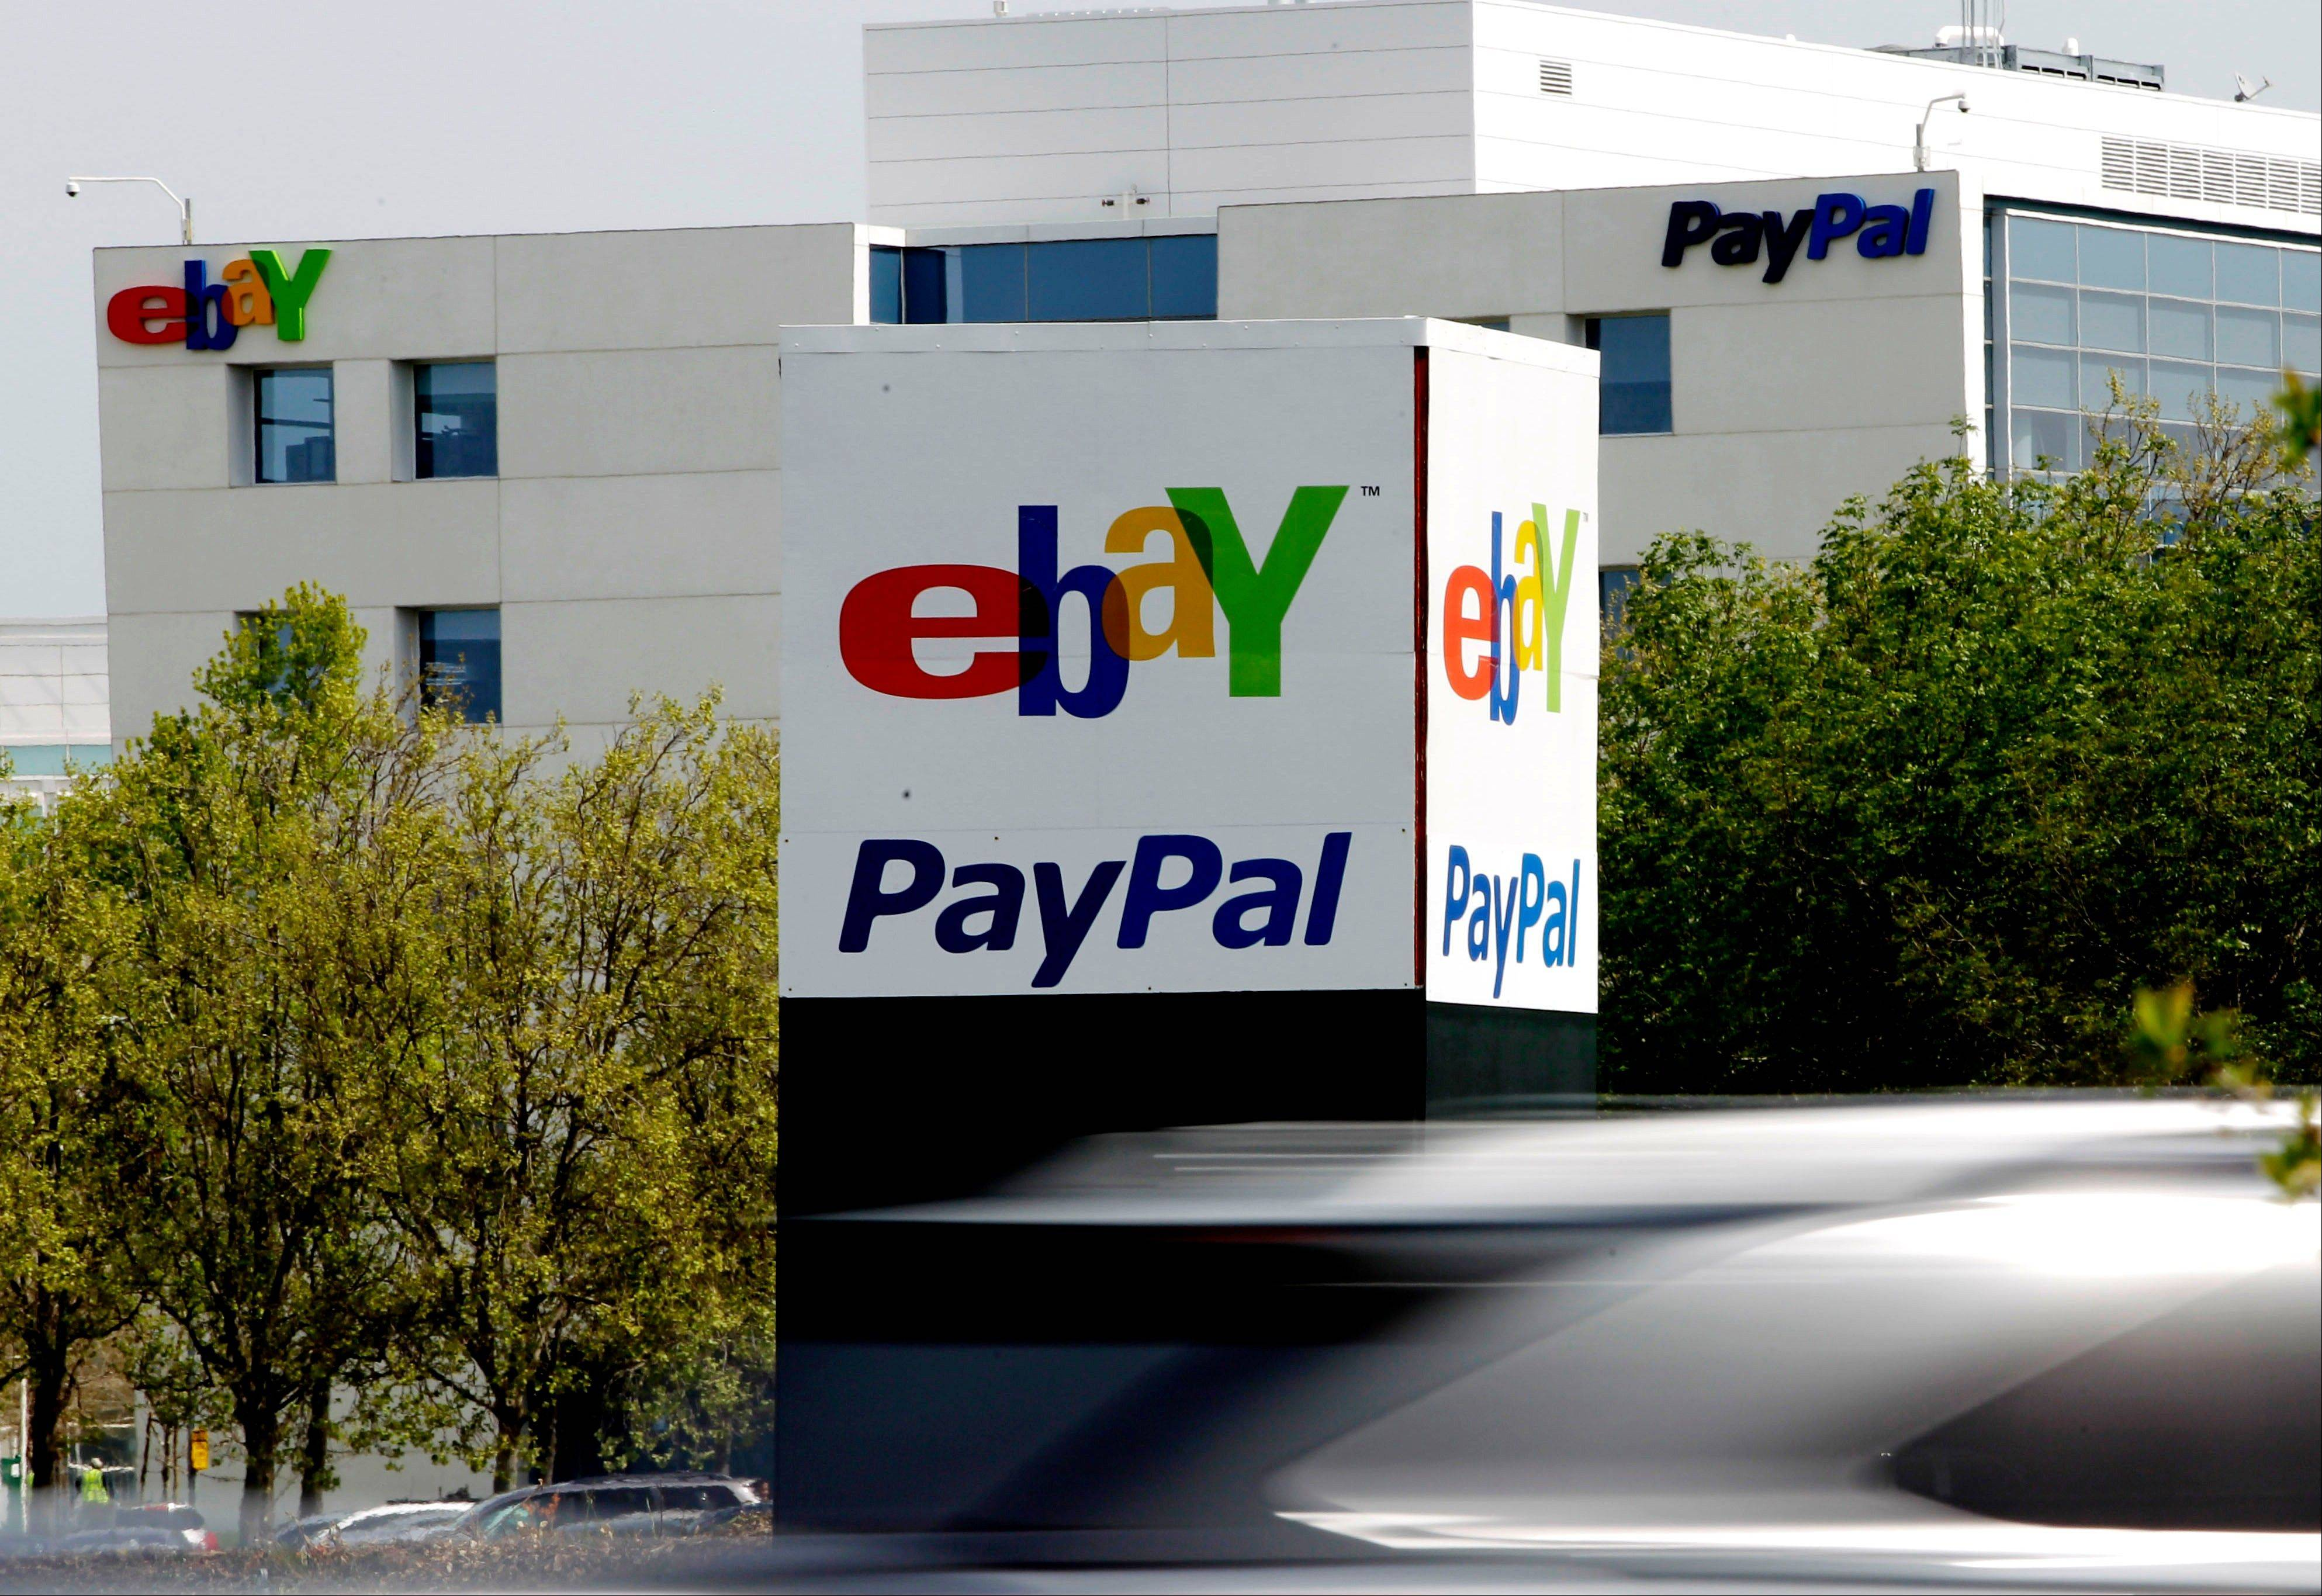 EBay finished last year with a flourish as bargain-hunting holiday shoppers flocked to its Internet shopping mall and digital payment service to help lift the company's fourth-quarter earnings above analyst projections.